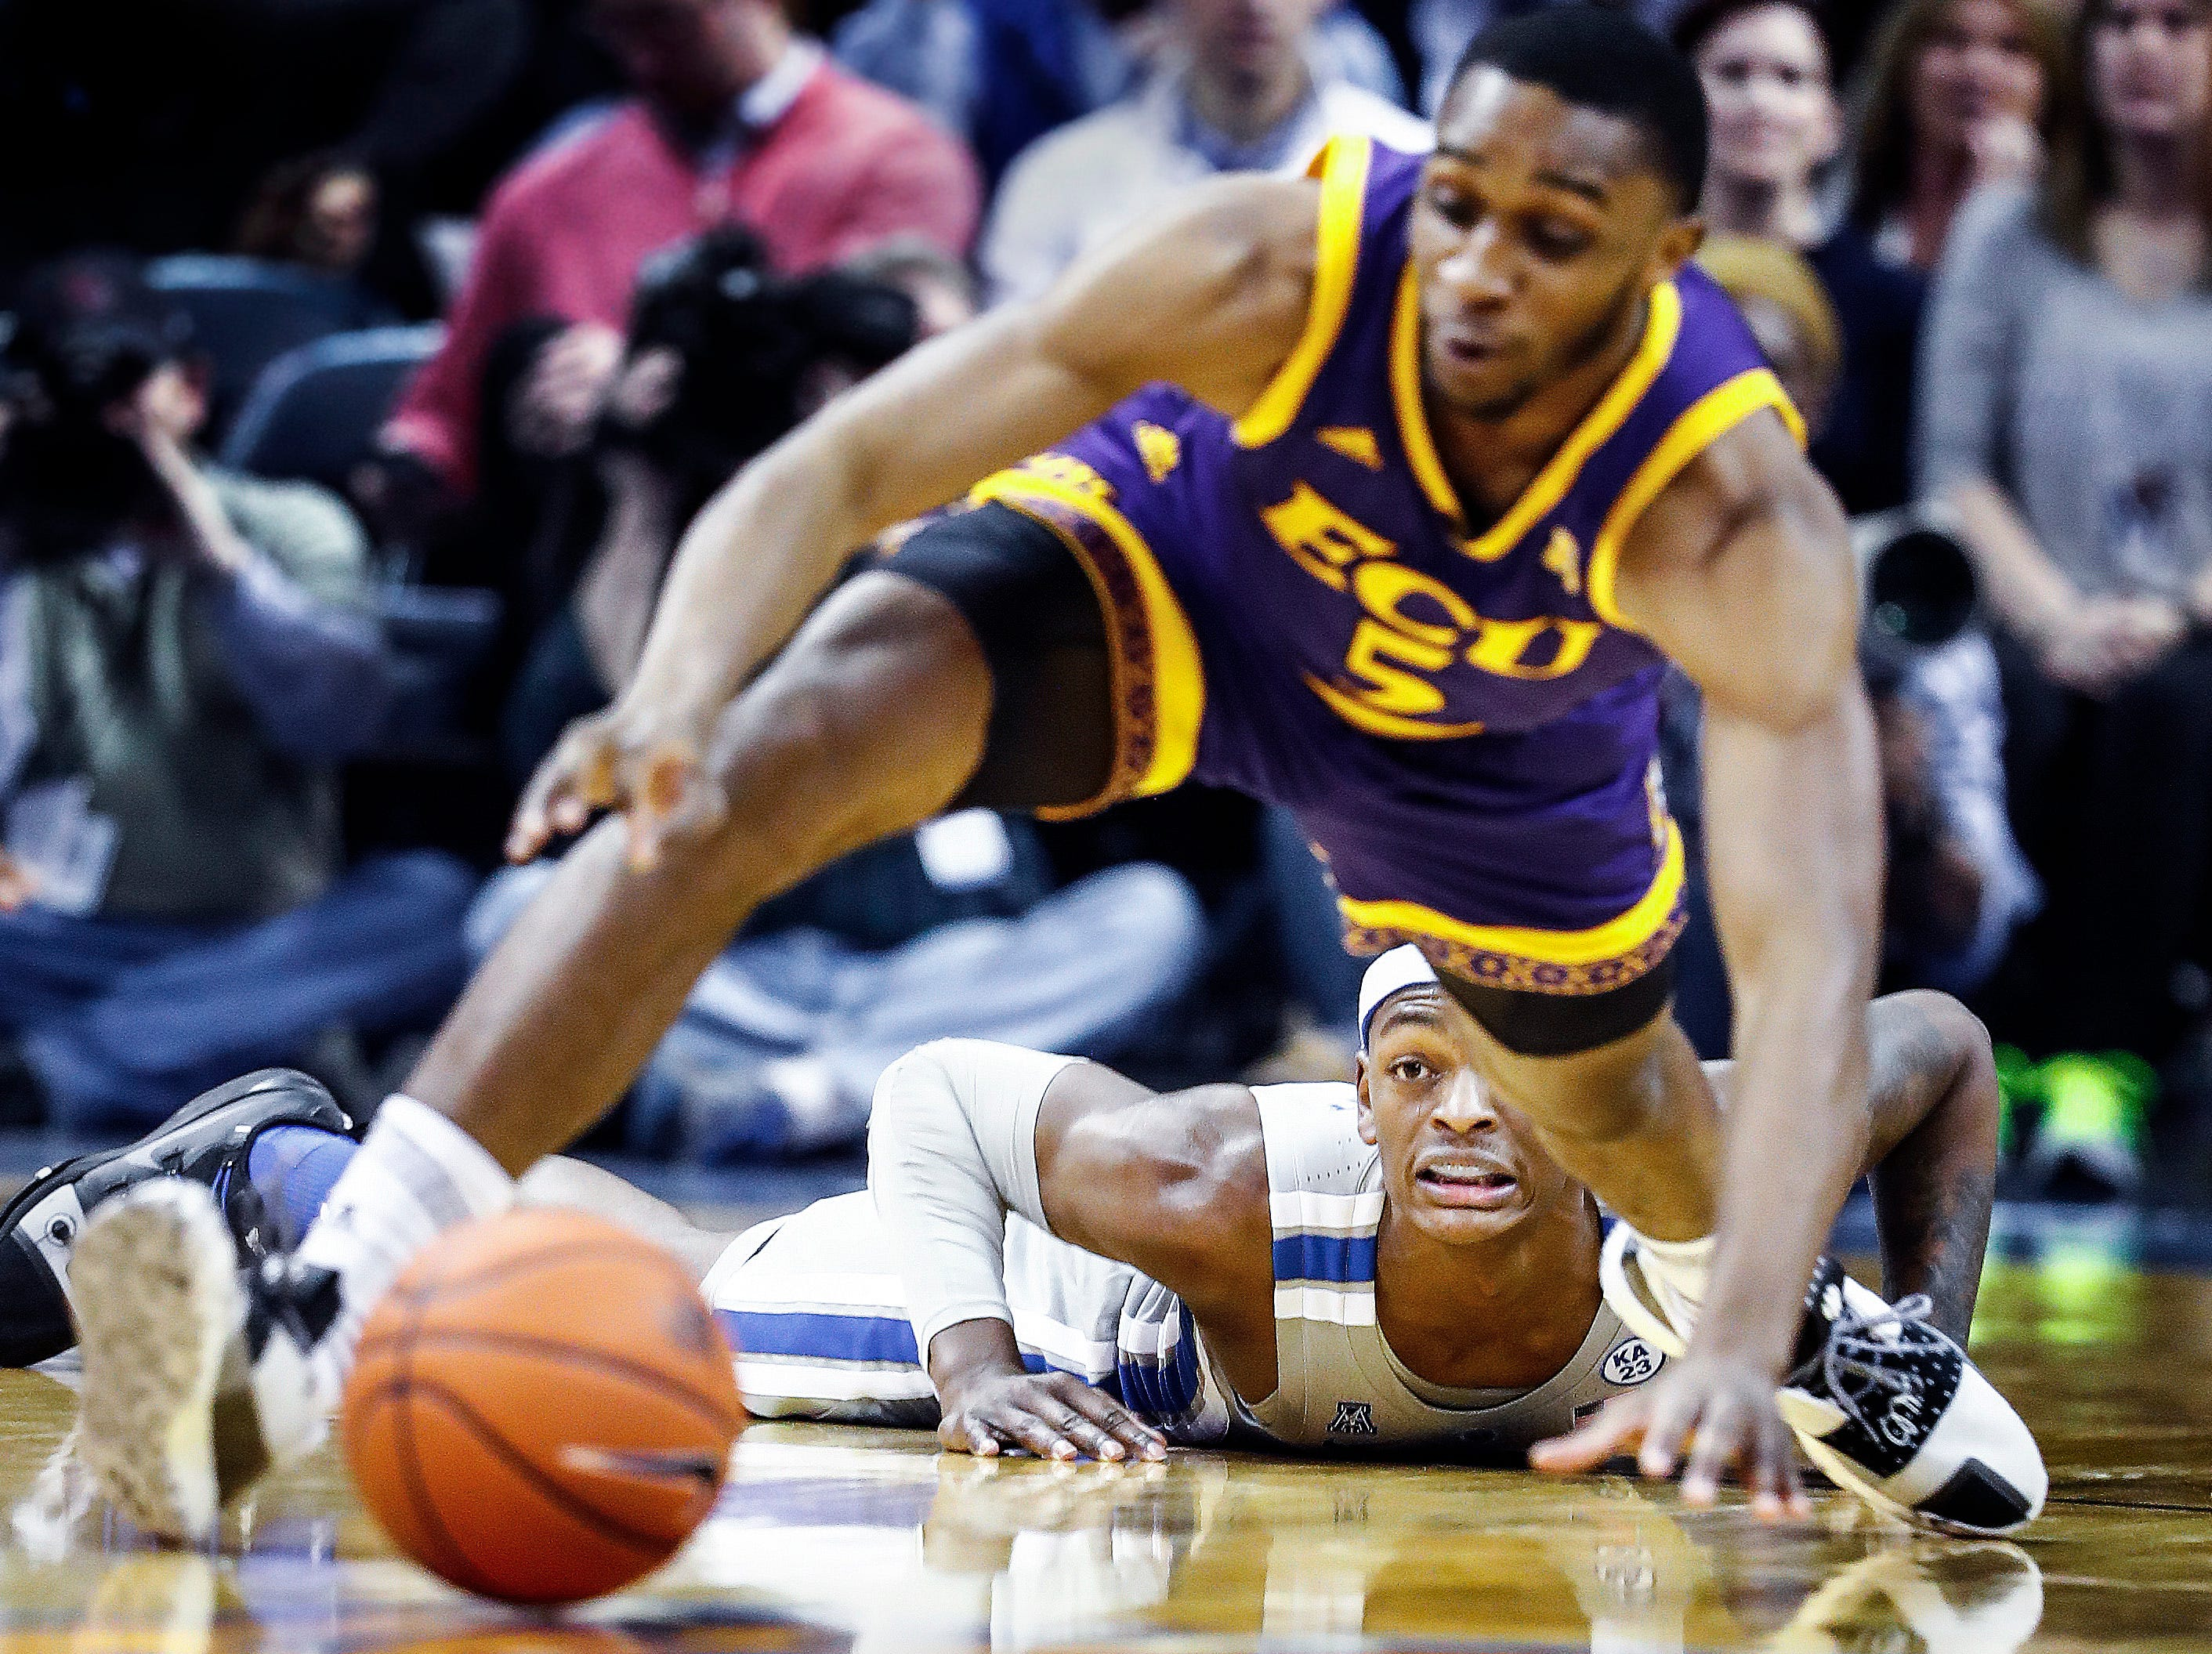 Memphis defender Kyvon Davenport (bottom) looks on as a loose ball rolls to ECU during action at the FedExForum, Thursday, January 10, 2019.